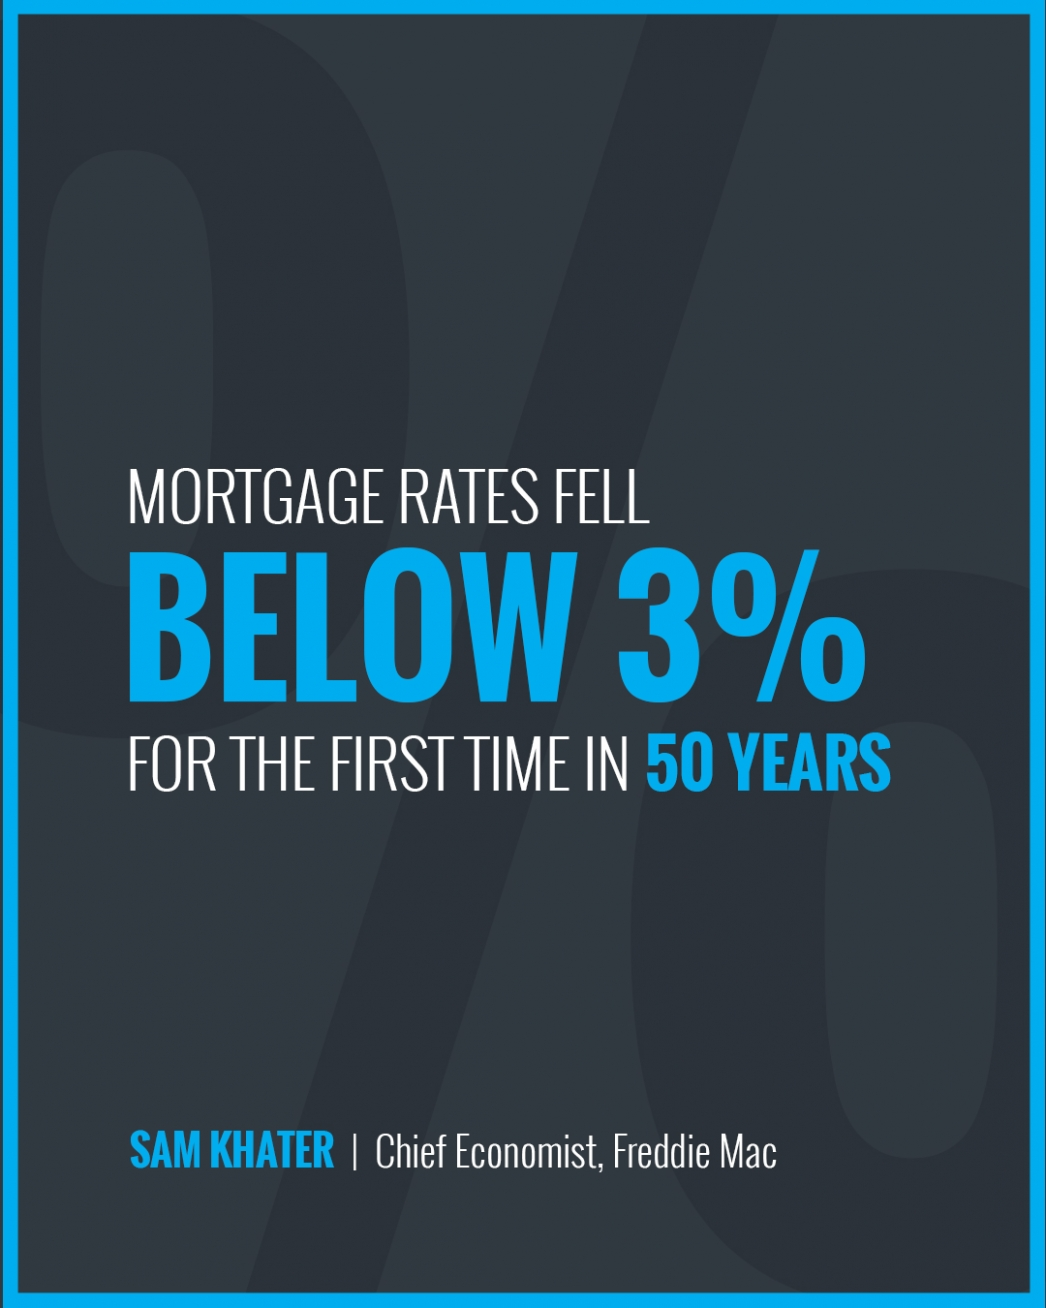 Mortgage Rates Fall to 50 year low